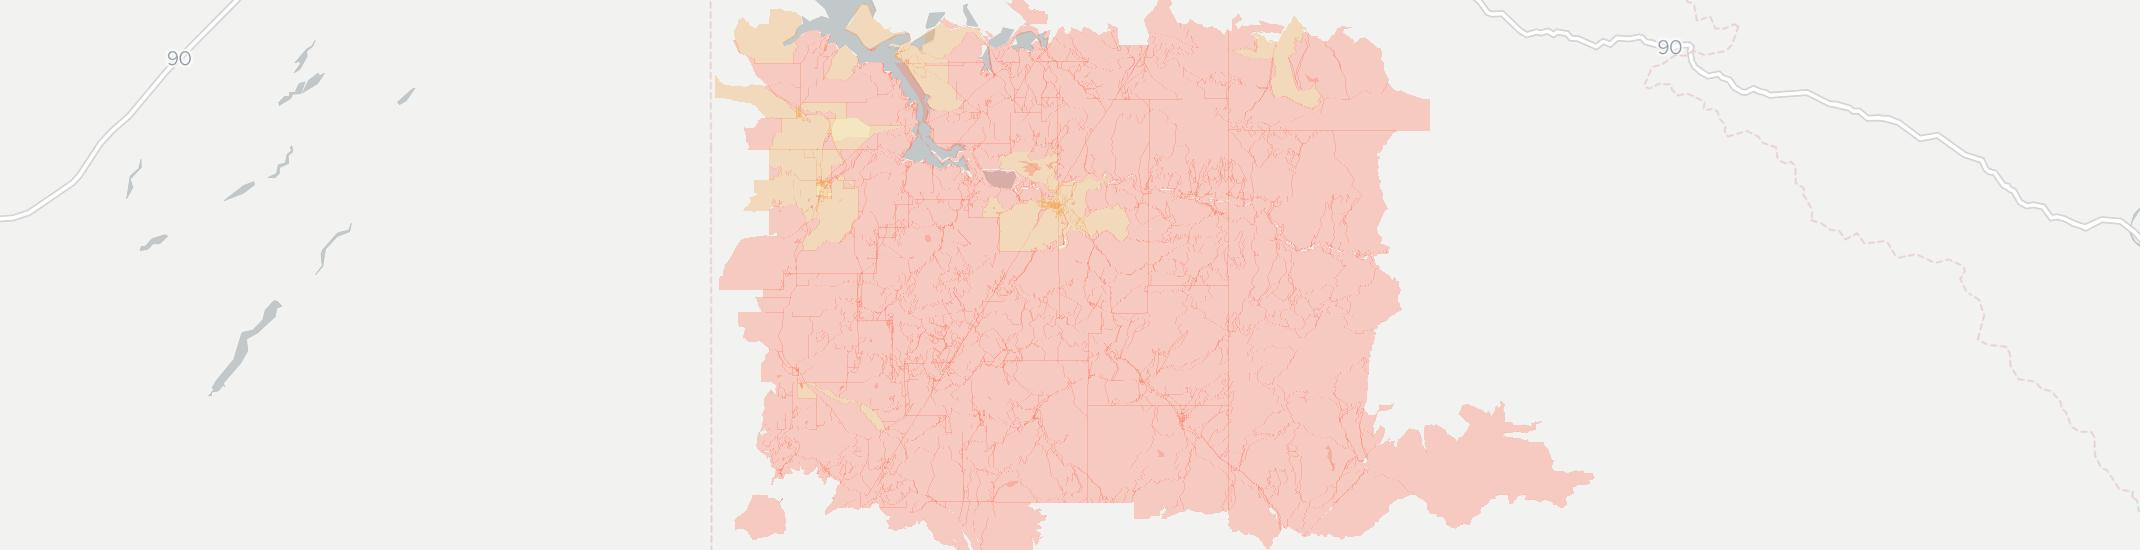 Saint Maries Internet Competition Map. Click for interactive map.